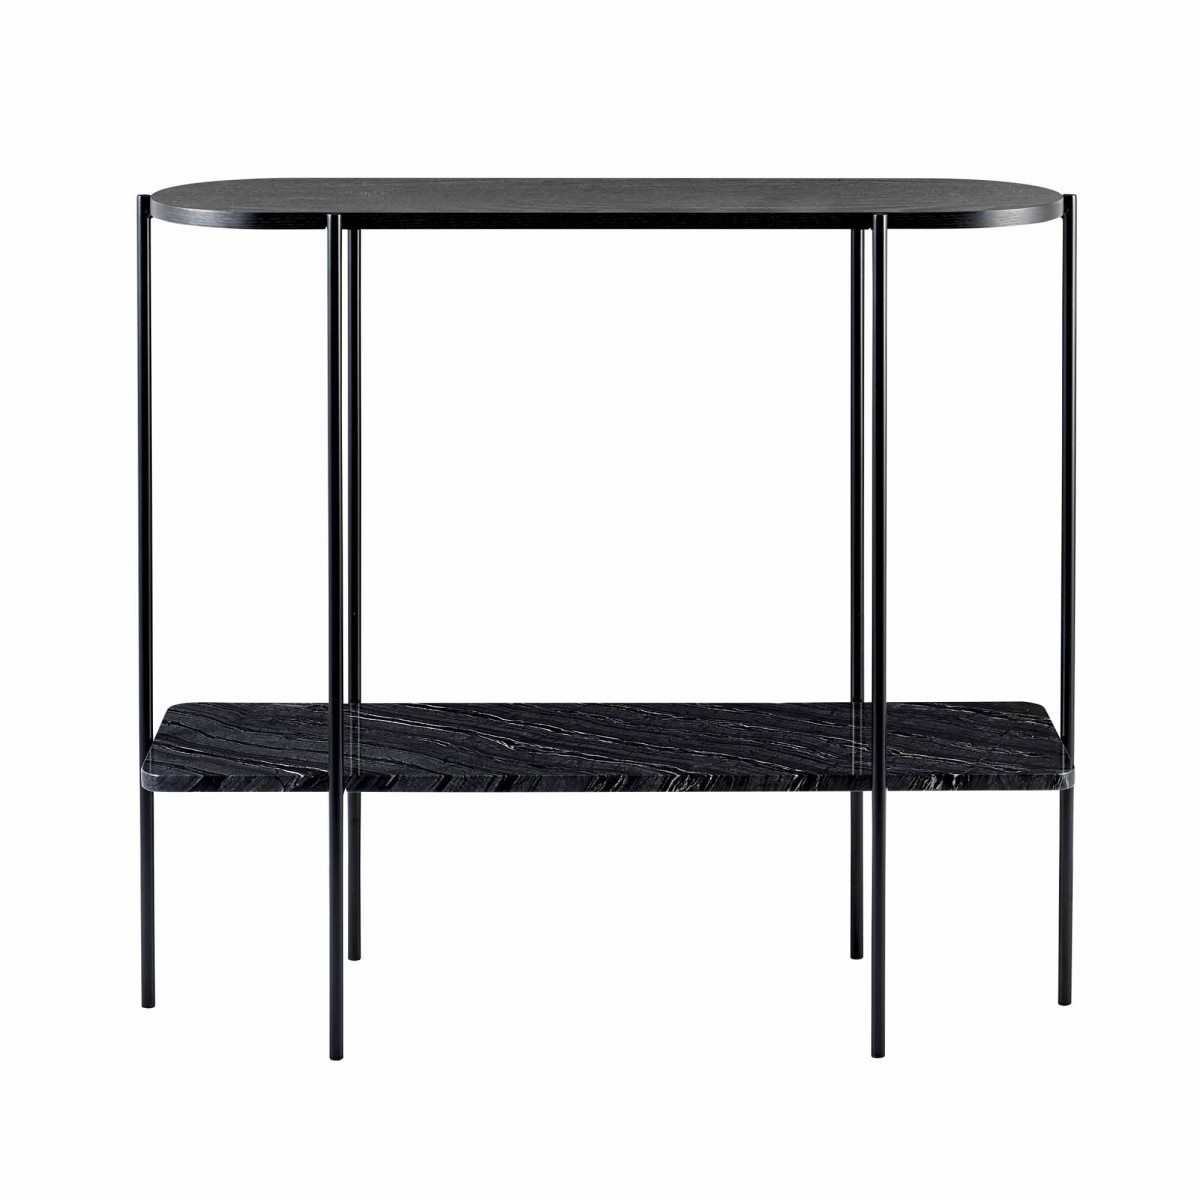 Pont Console Table By Bolia